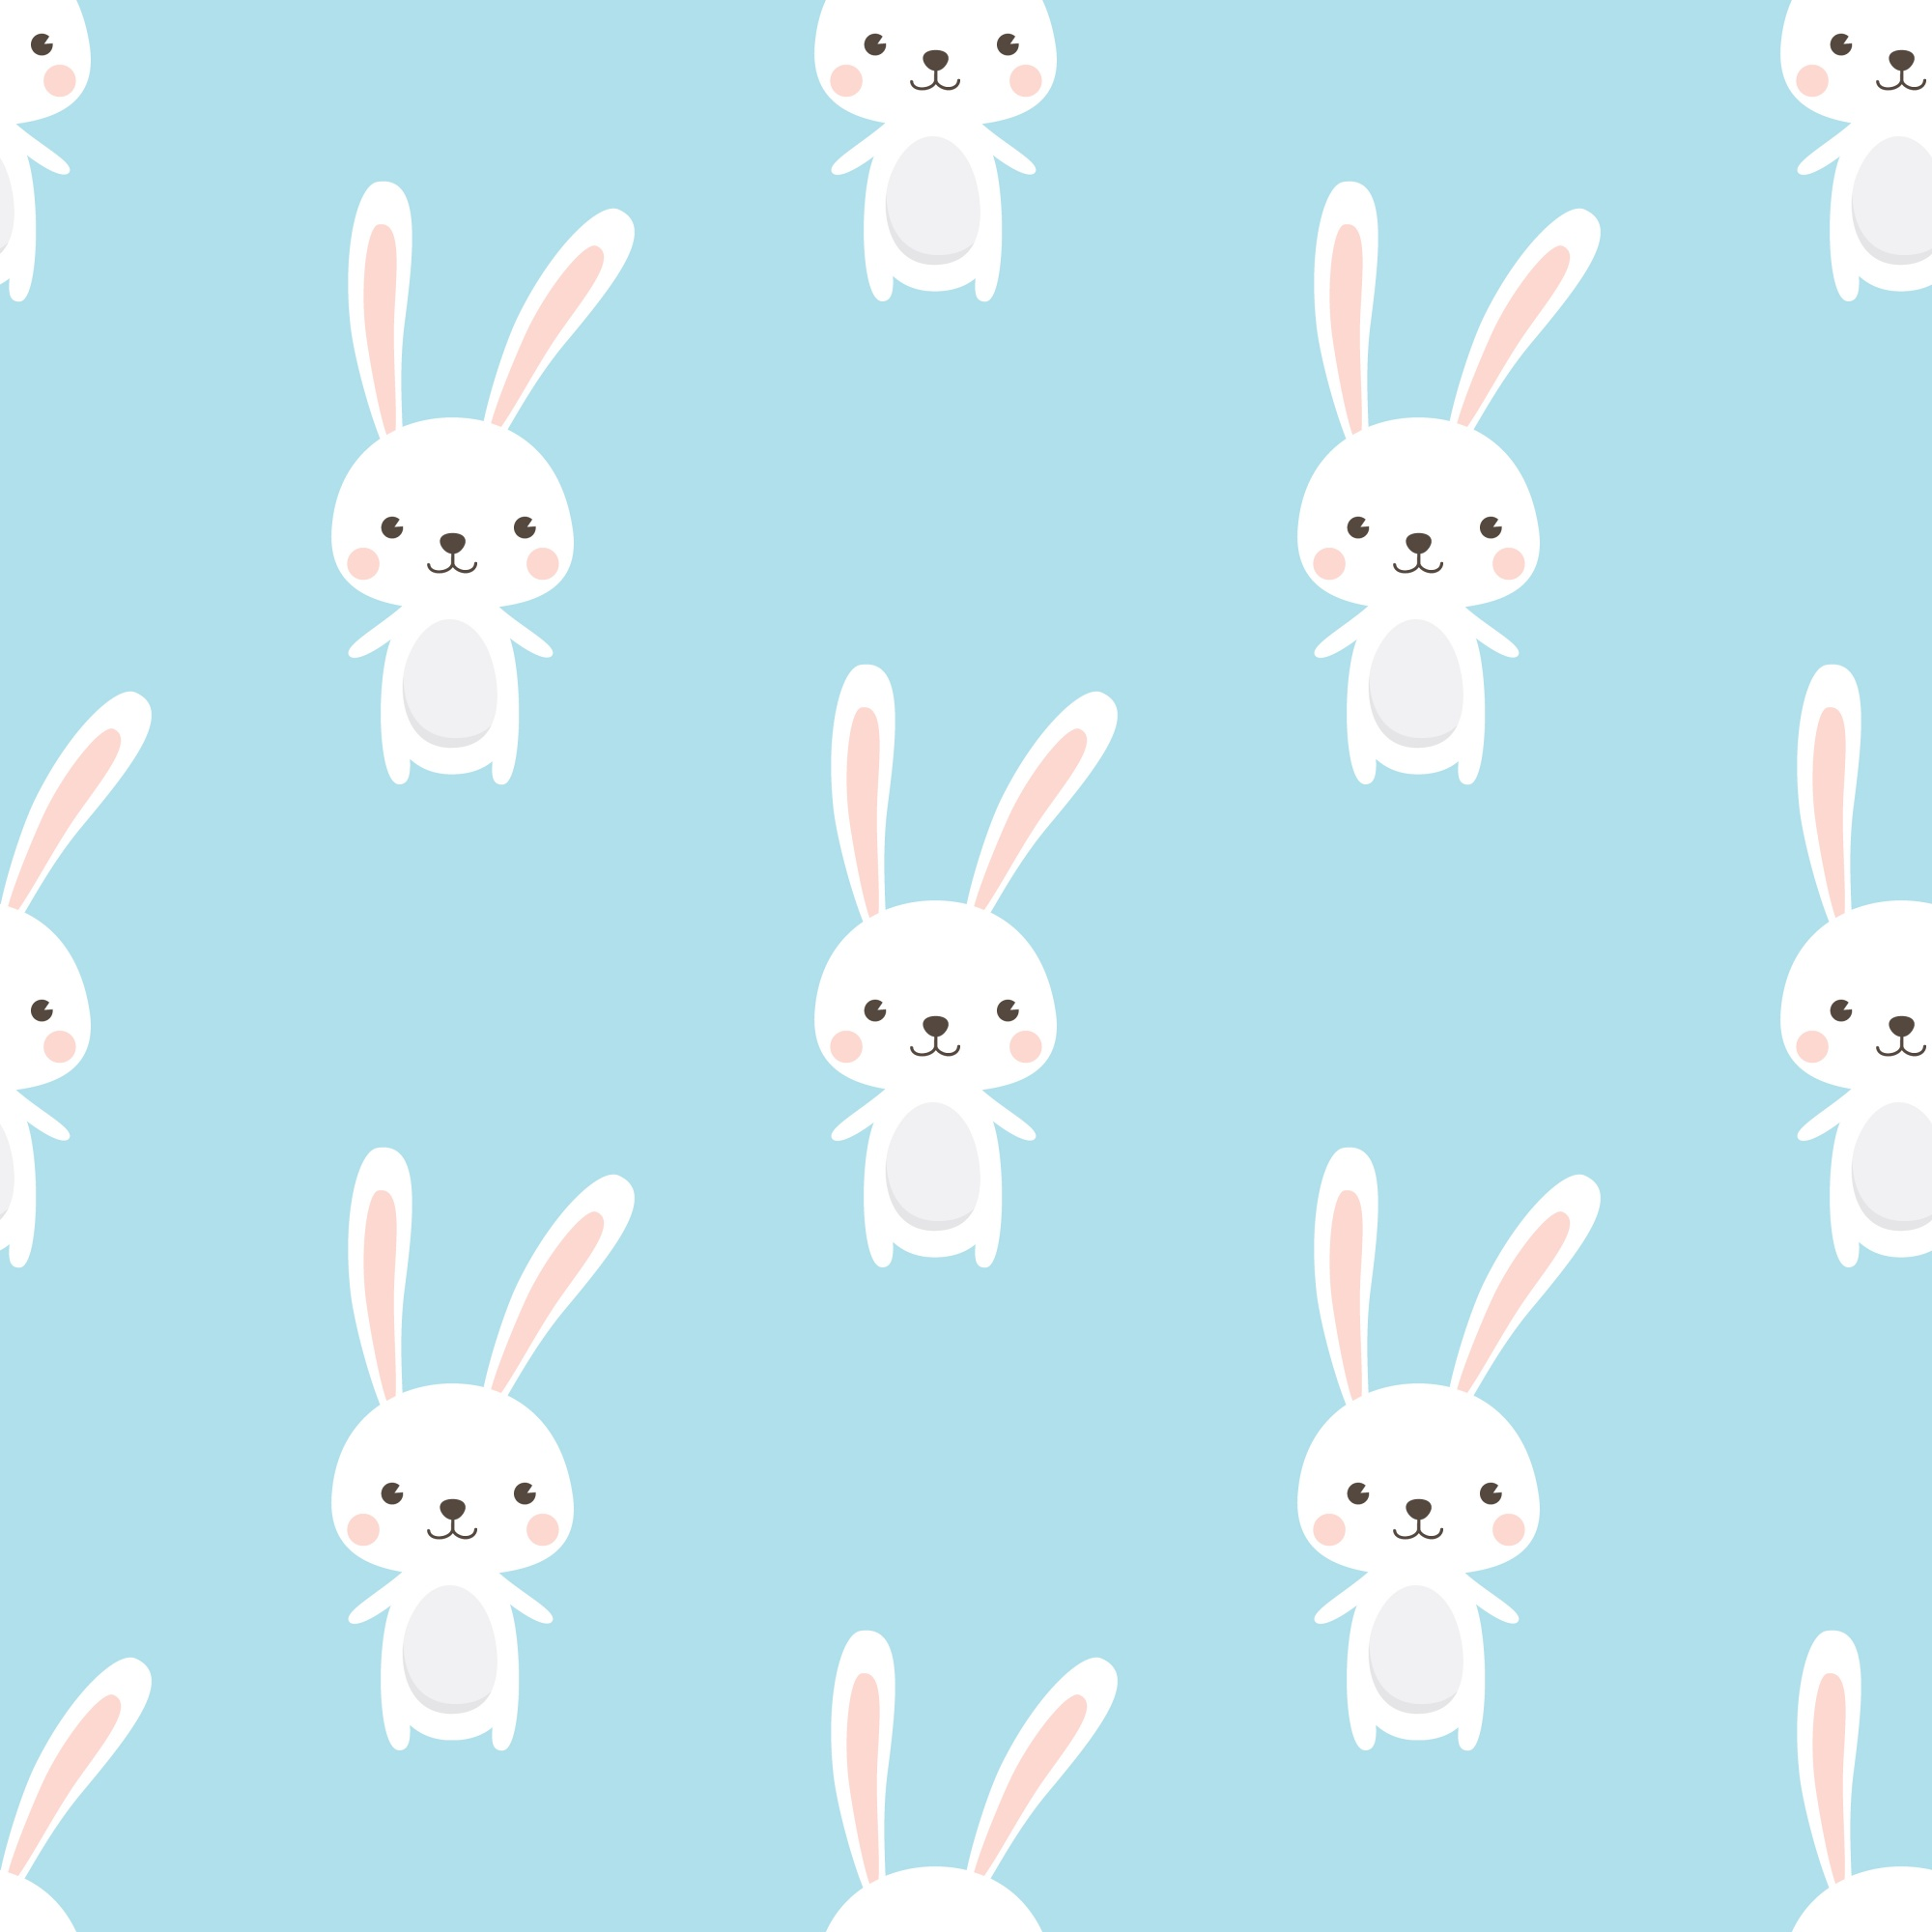 Cute Rabbit personnage Seamless pattern on blue sky background